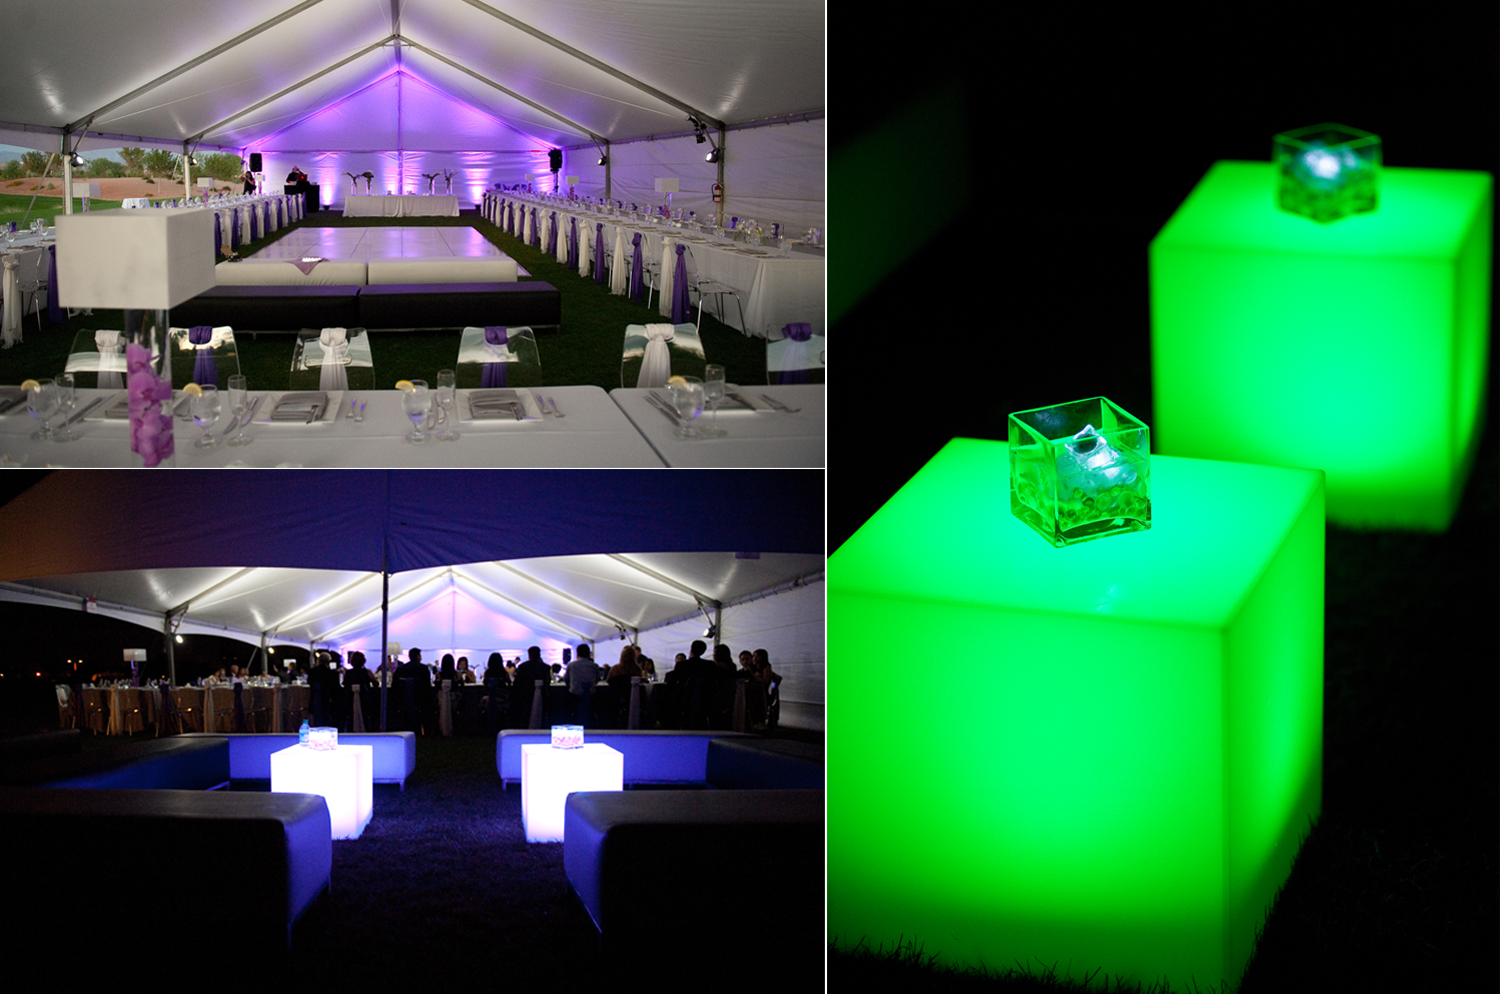 Led-lighting-wedding-reception-decor-ambiance.original